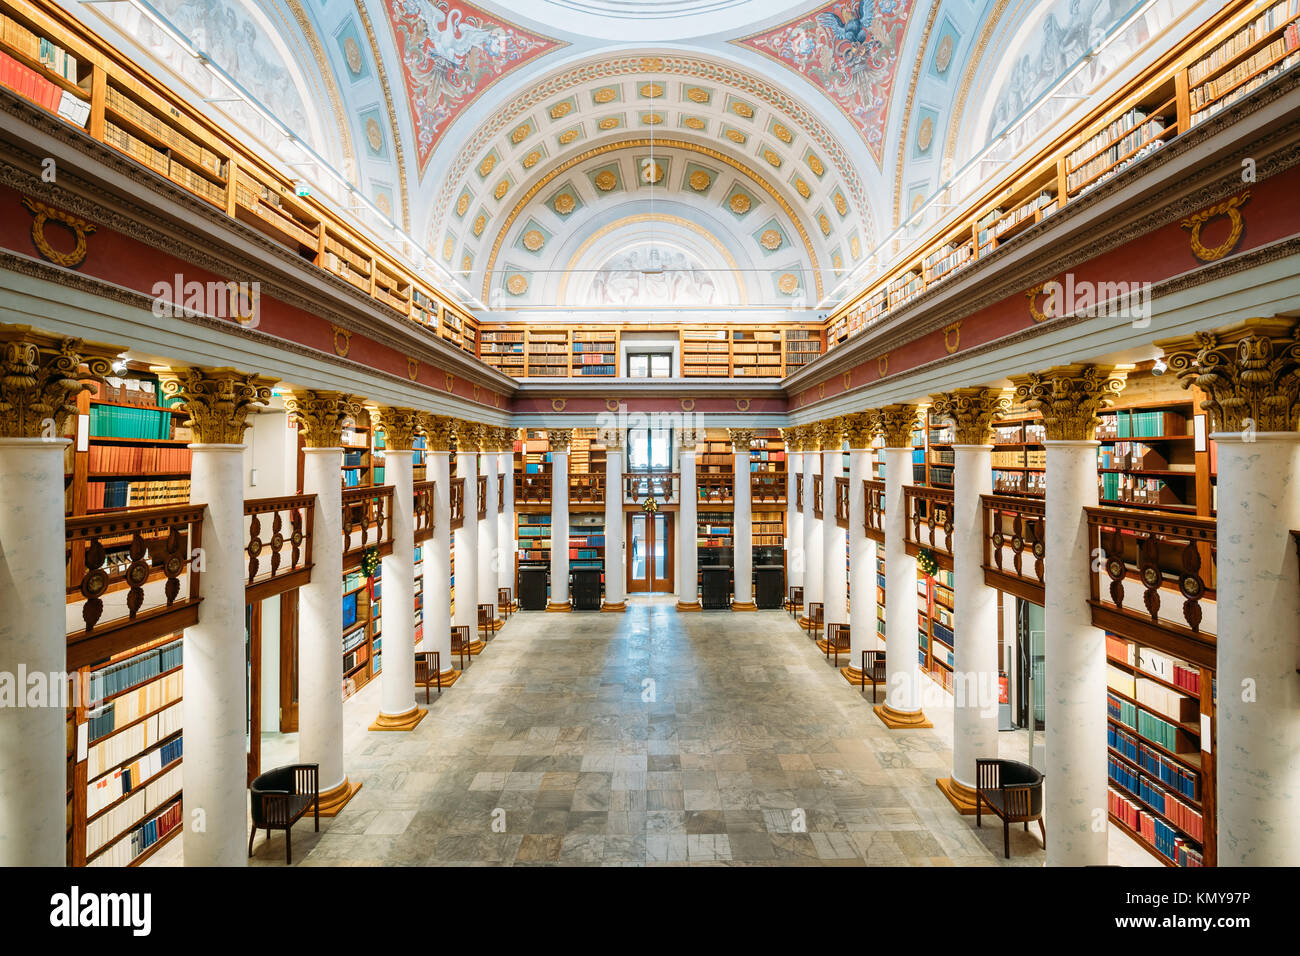 Helsinki, Finland. Hall In The National Library Of Finland. - Stock Image